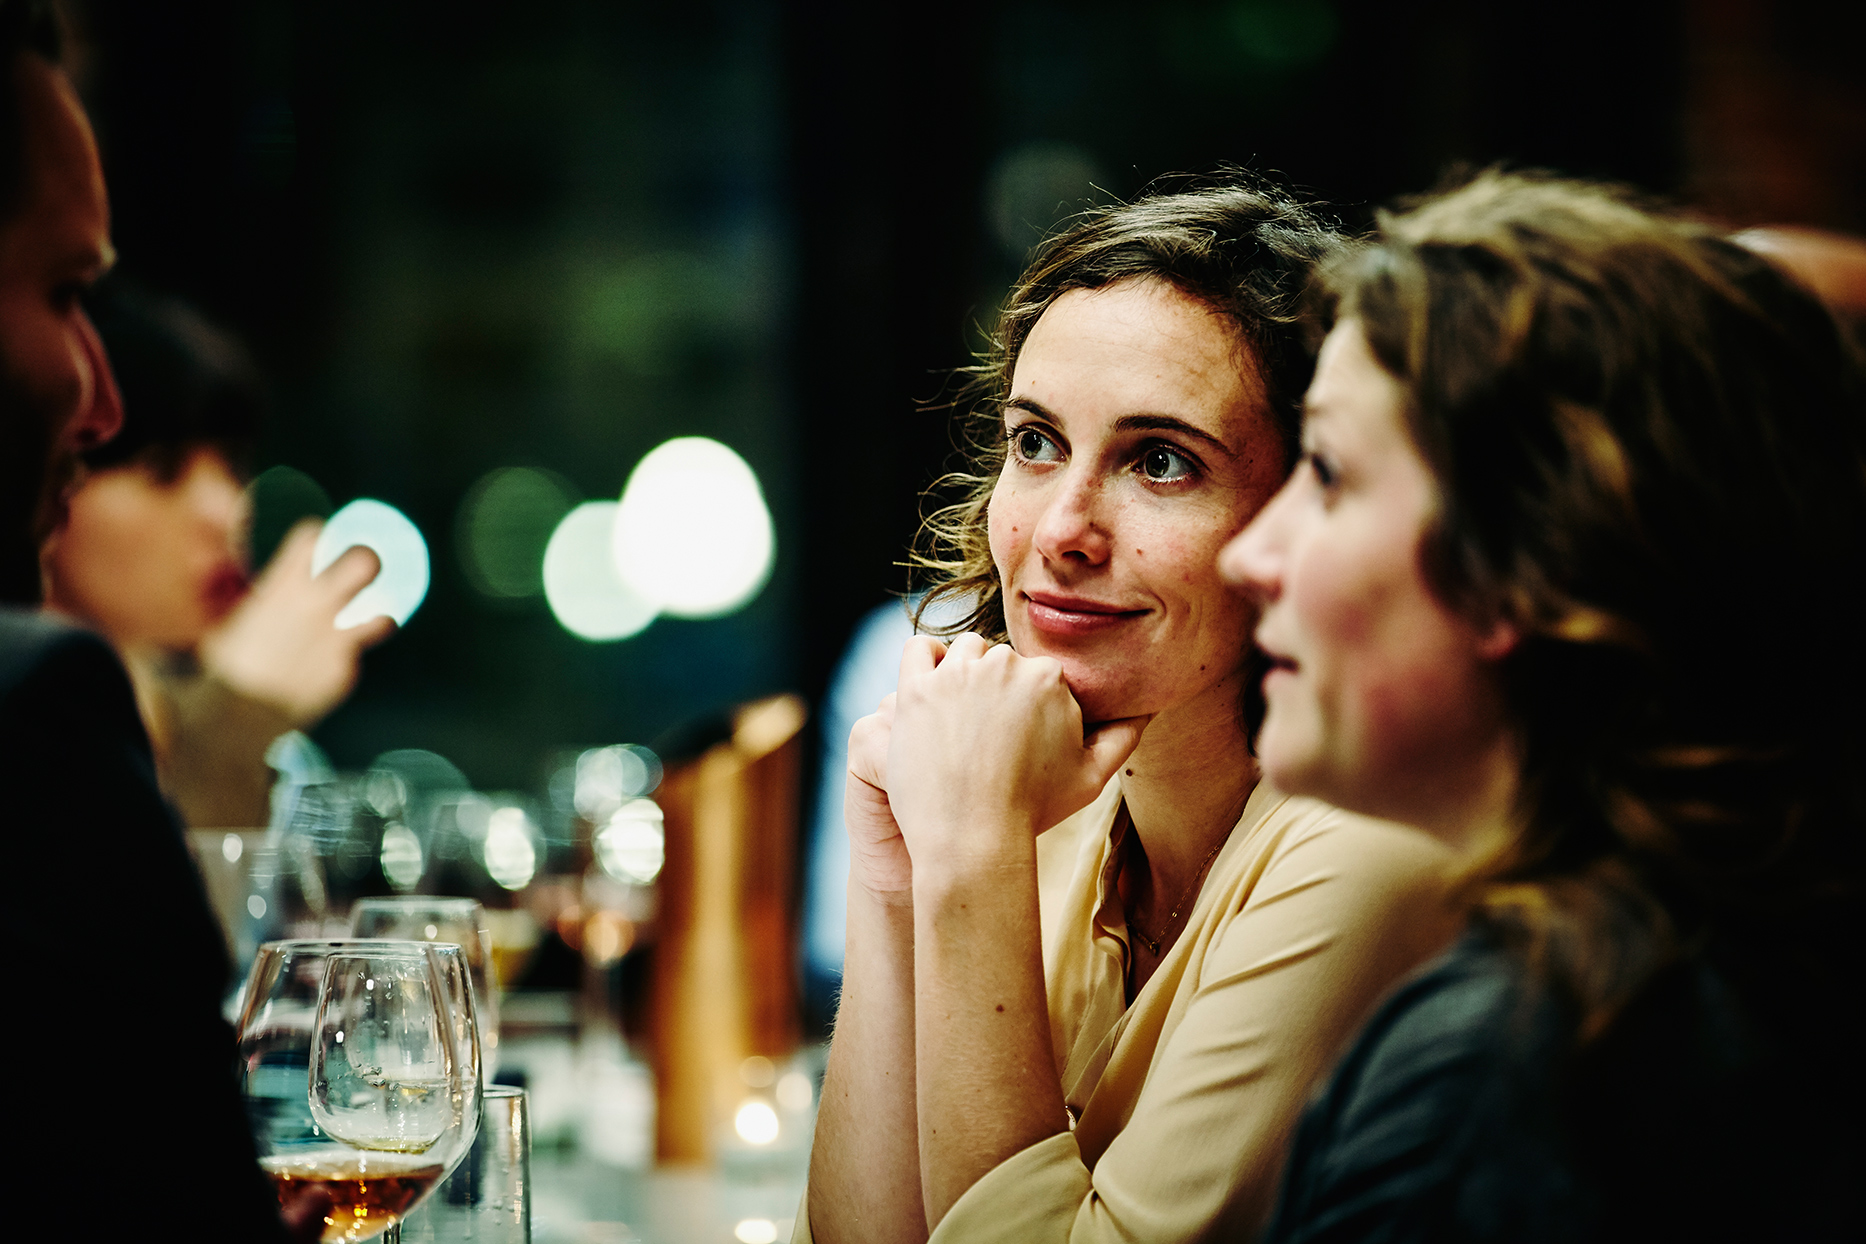 woman smiling and putting elbows on table